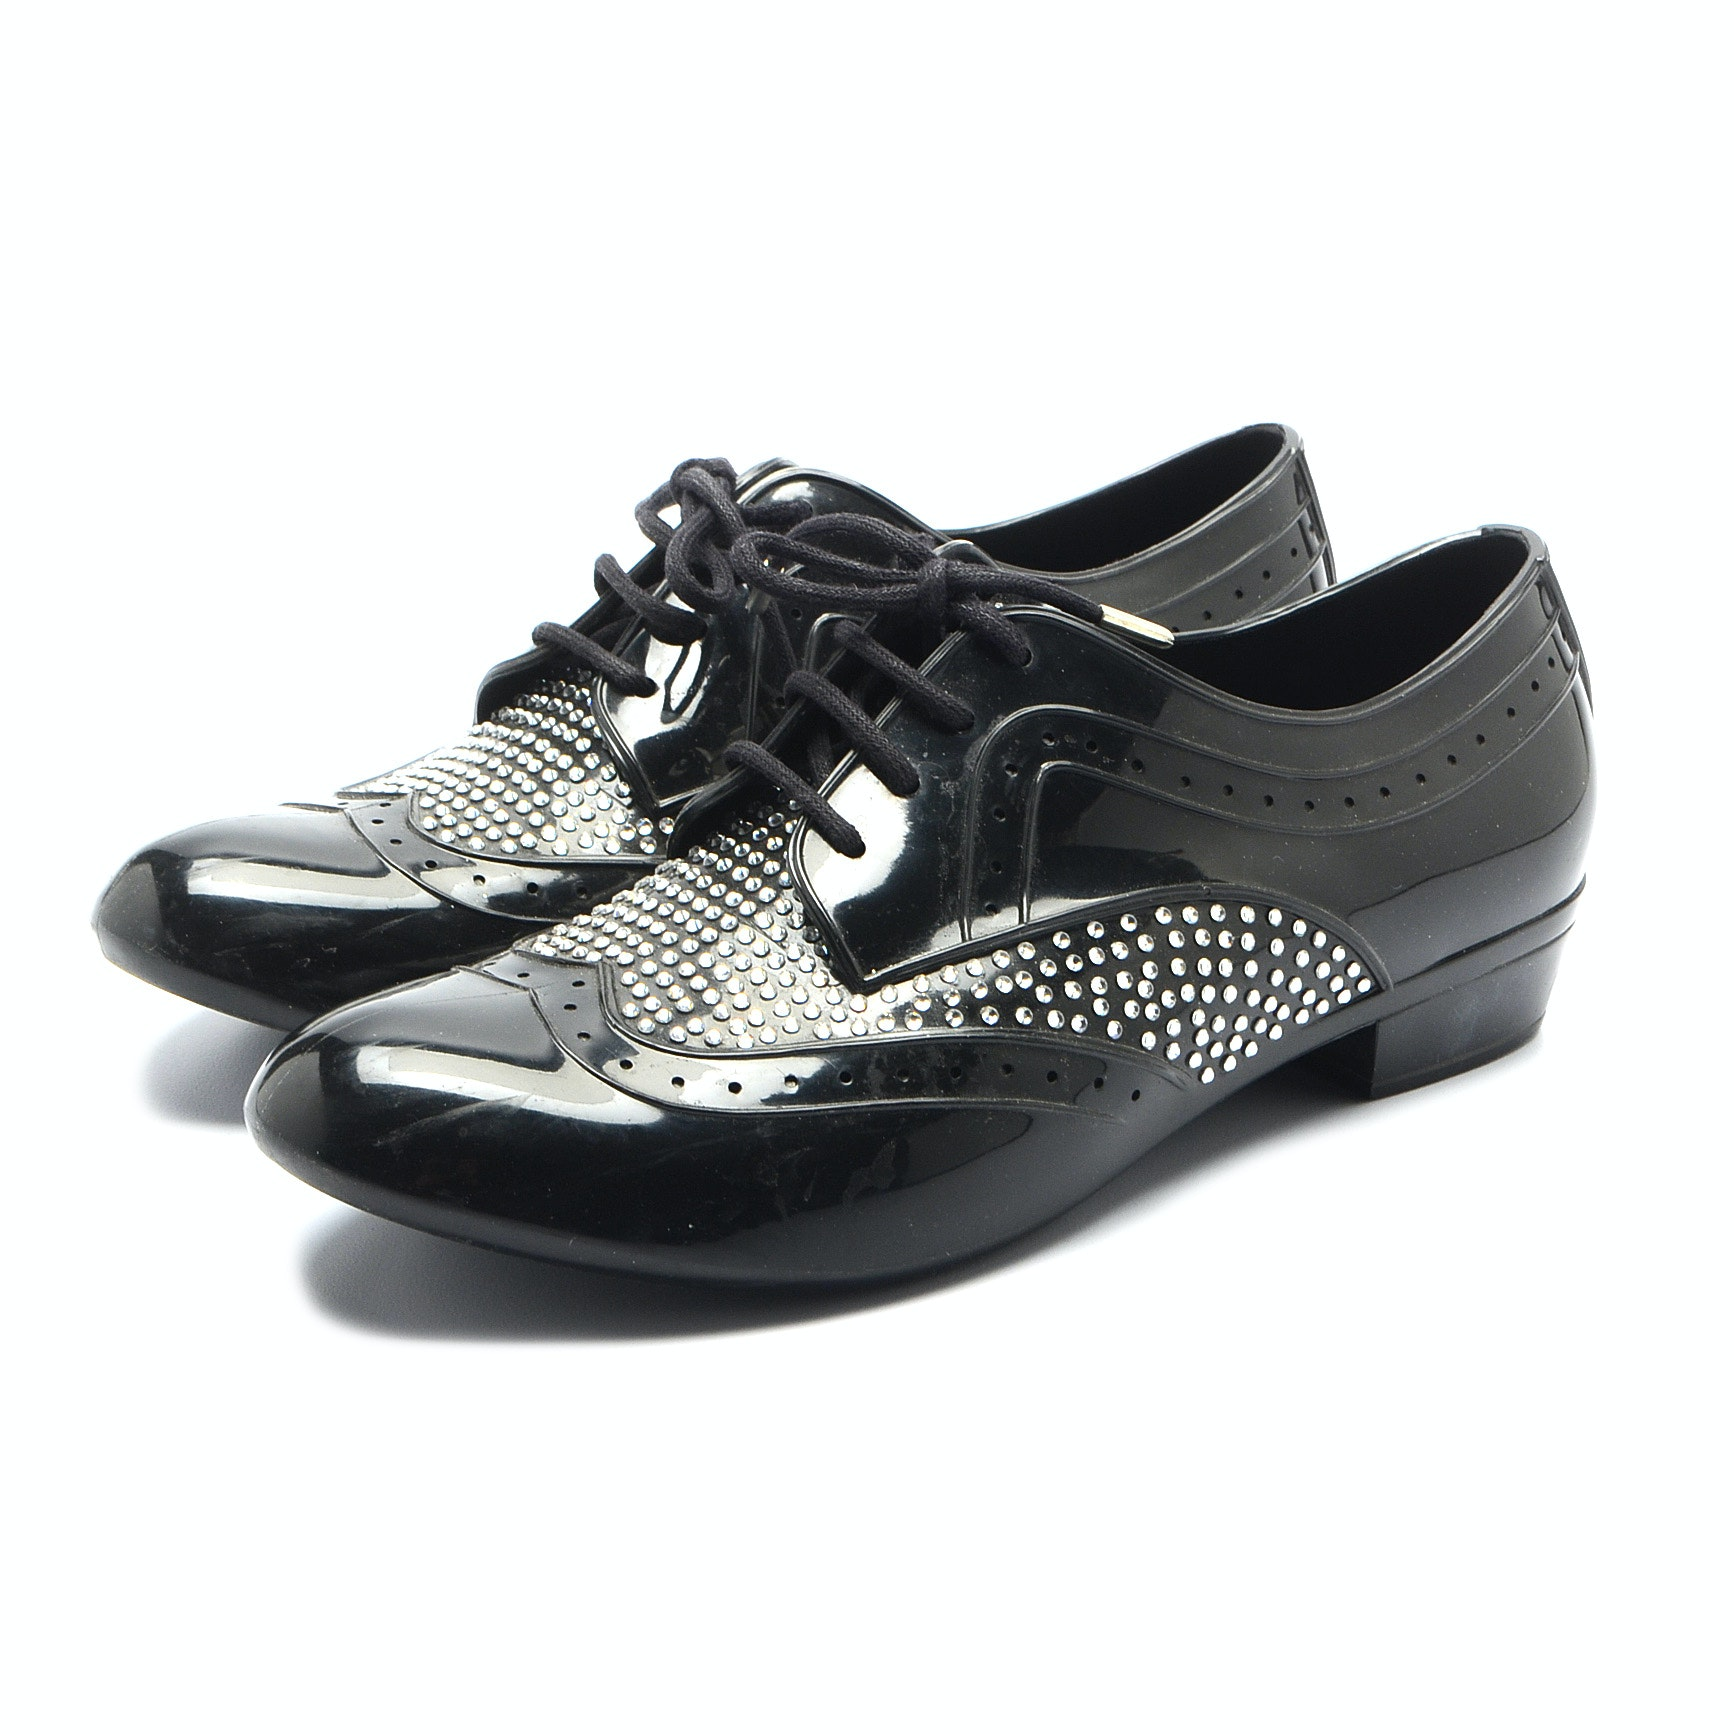 J. Maskrey for Melissa Couture Black Recycled PVC Oxfords